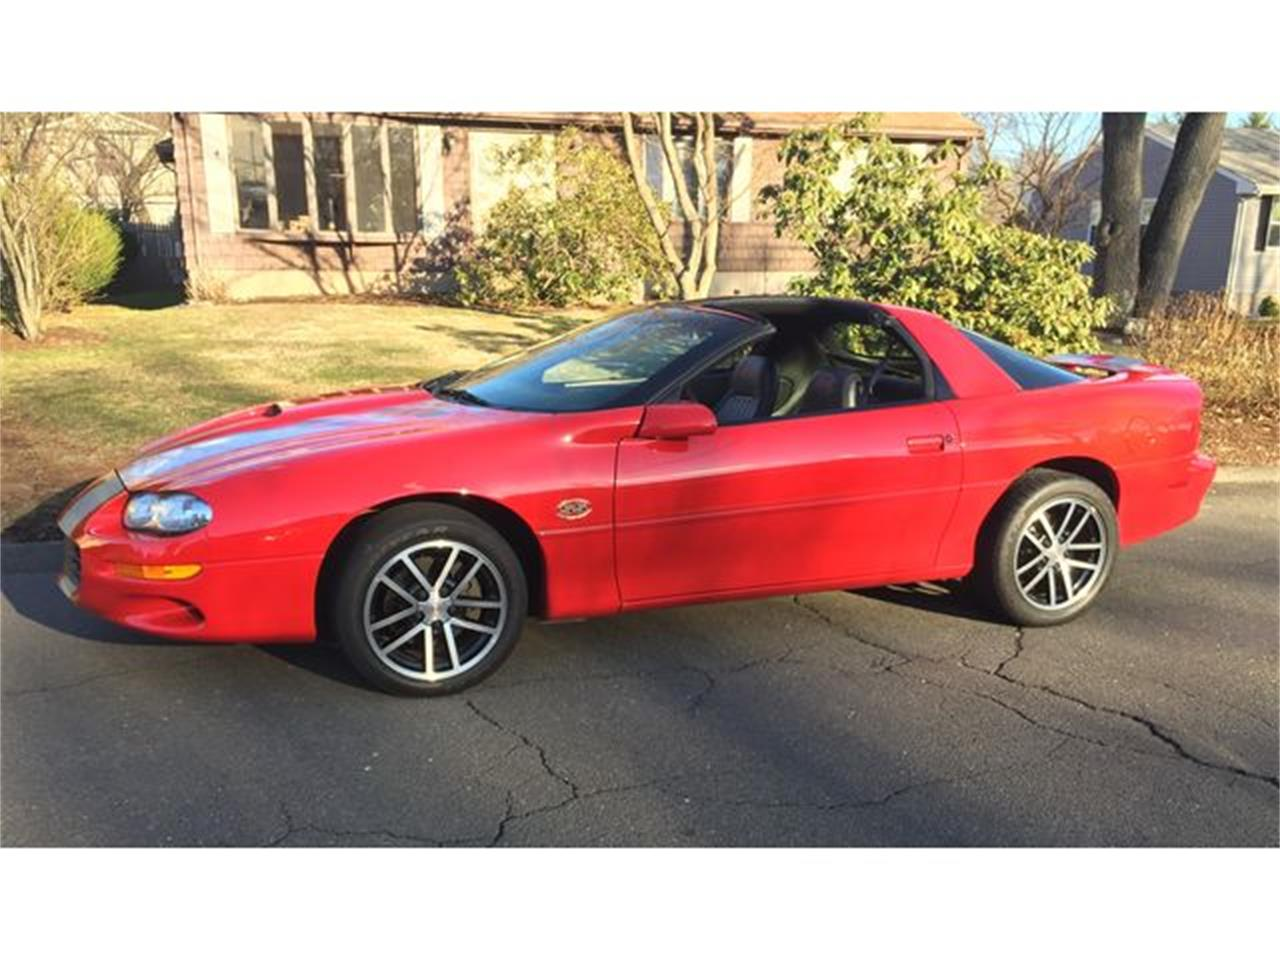 2002 Chevrolet Camaro (CC-1259067) for sale in Carlisle, Pennsylvania